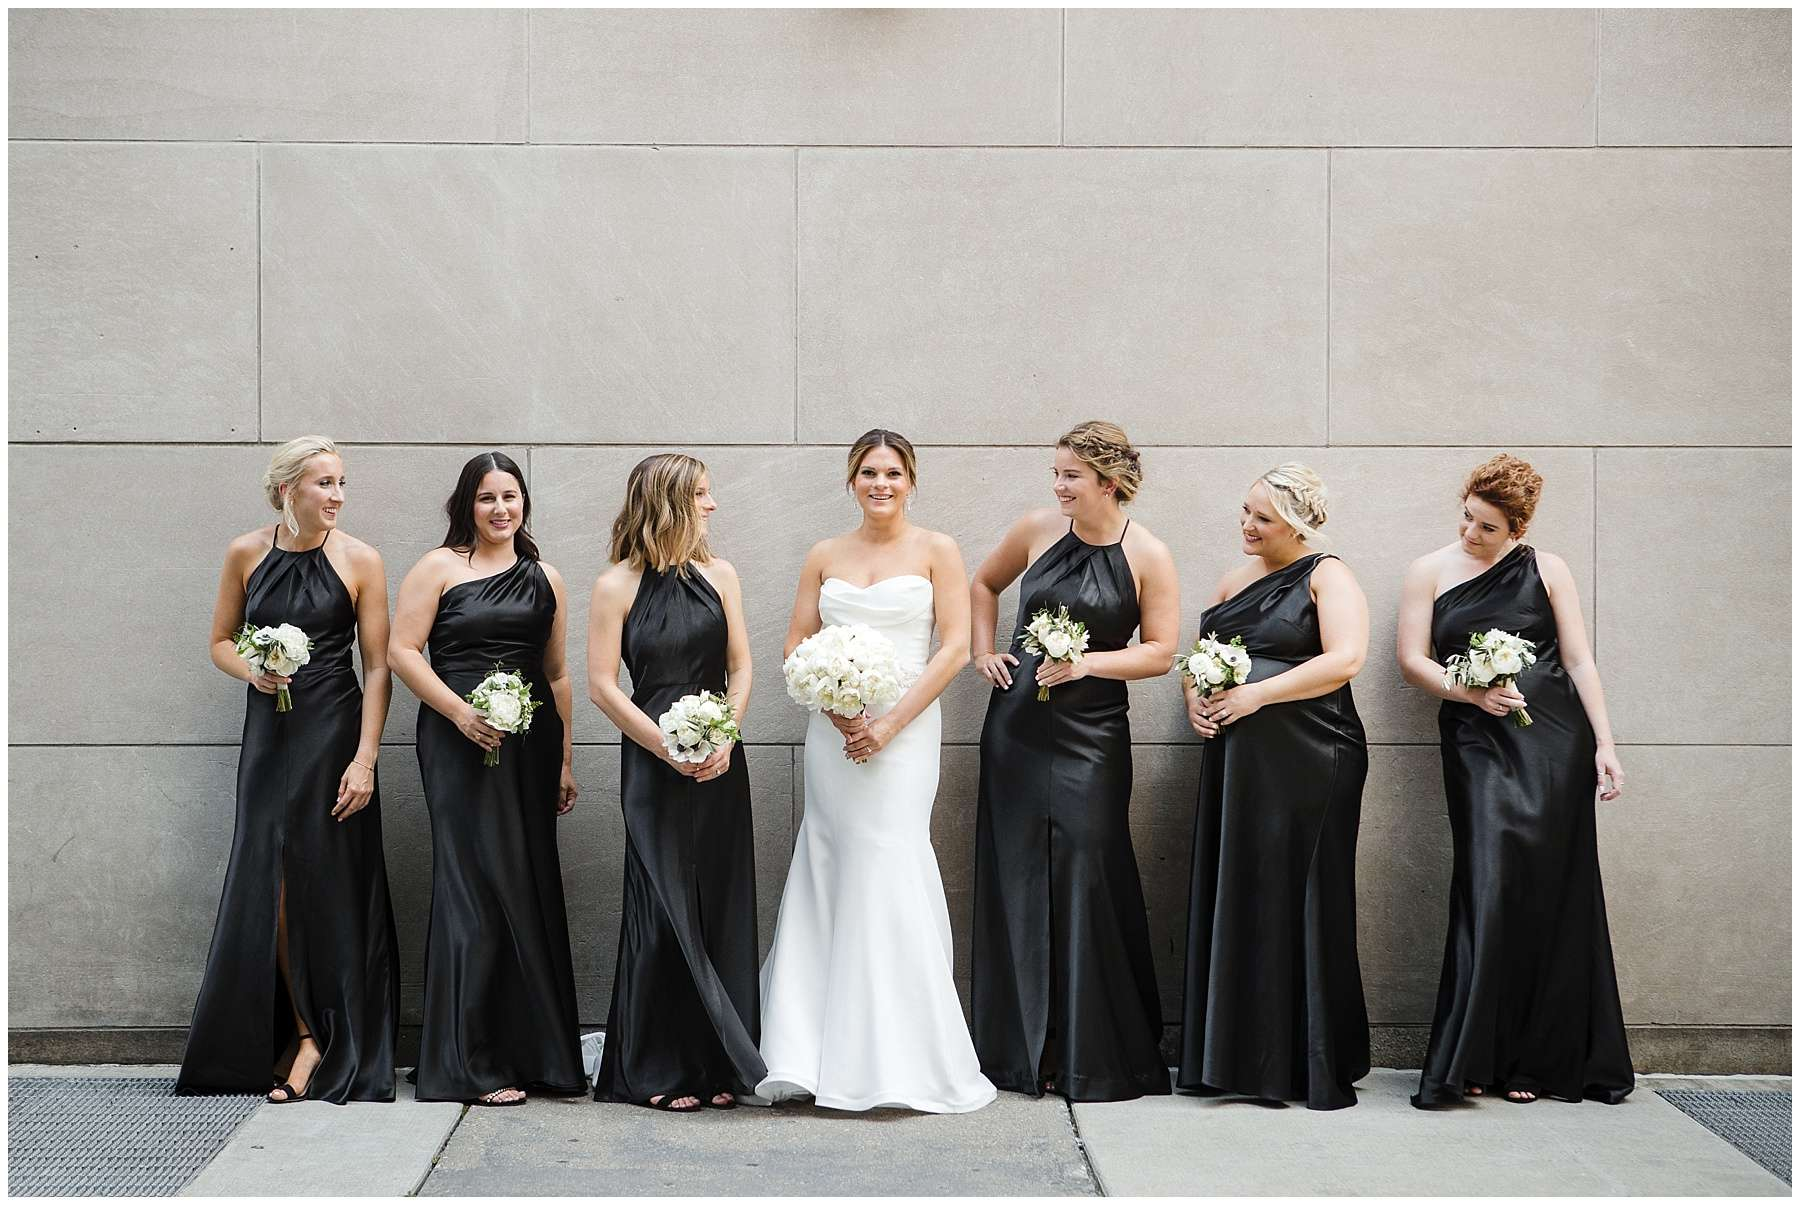 a bride smiles while posing with her bridesmaids who are wearing long black satin dresses and holding small white bouquets